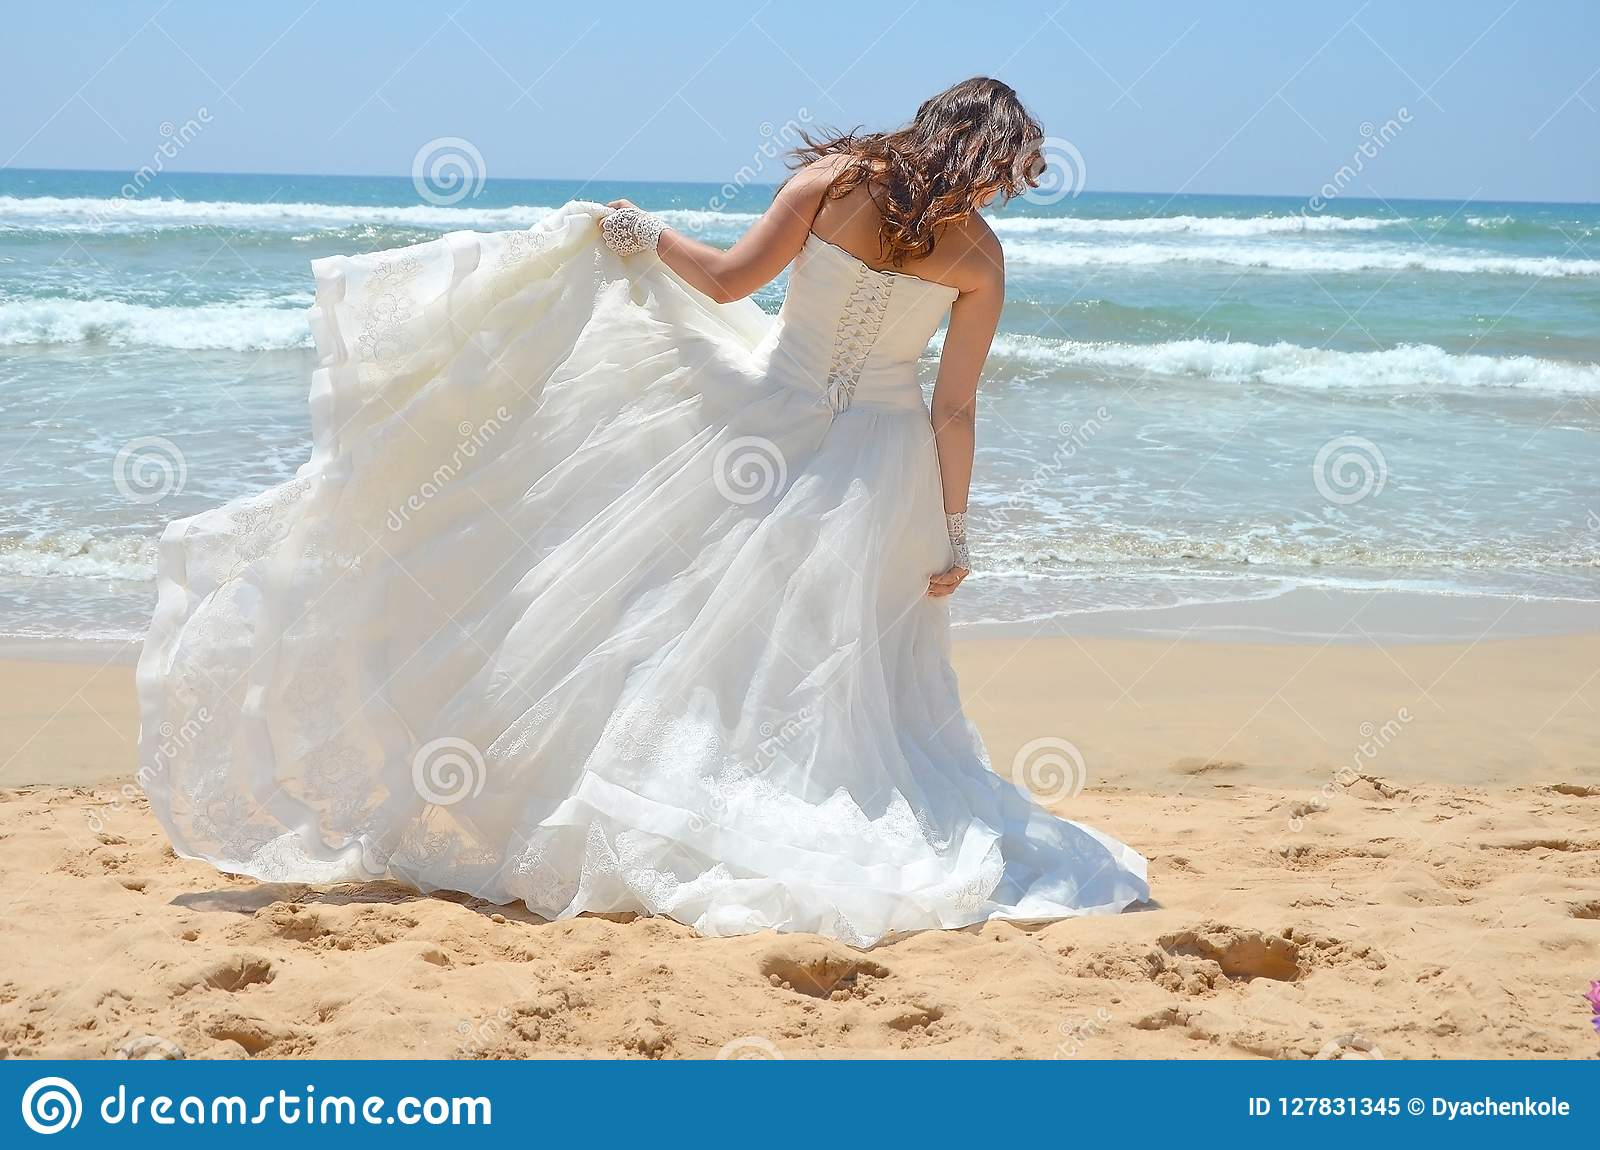 Long-haired brunette bride straightens her dress standing on the sand, the beach on the Indian Ocean. Wedding and honeymoon